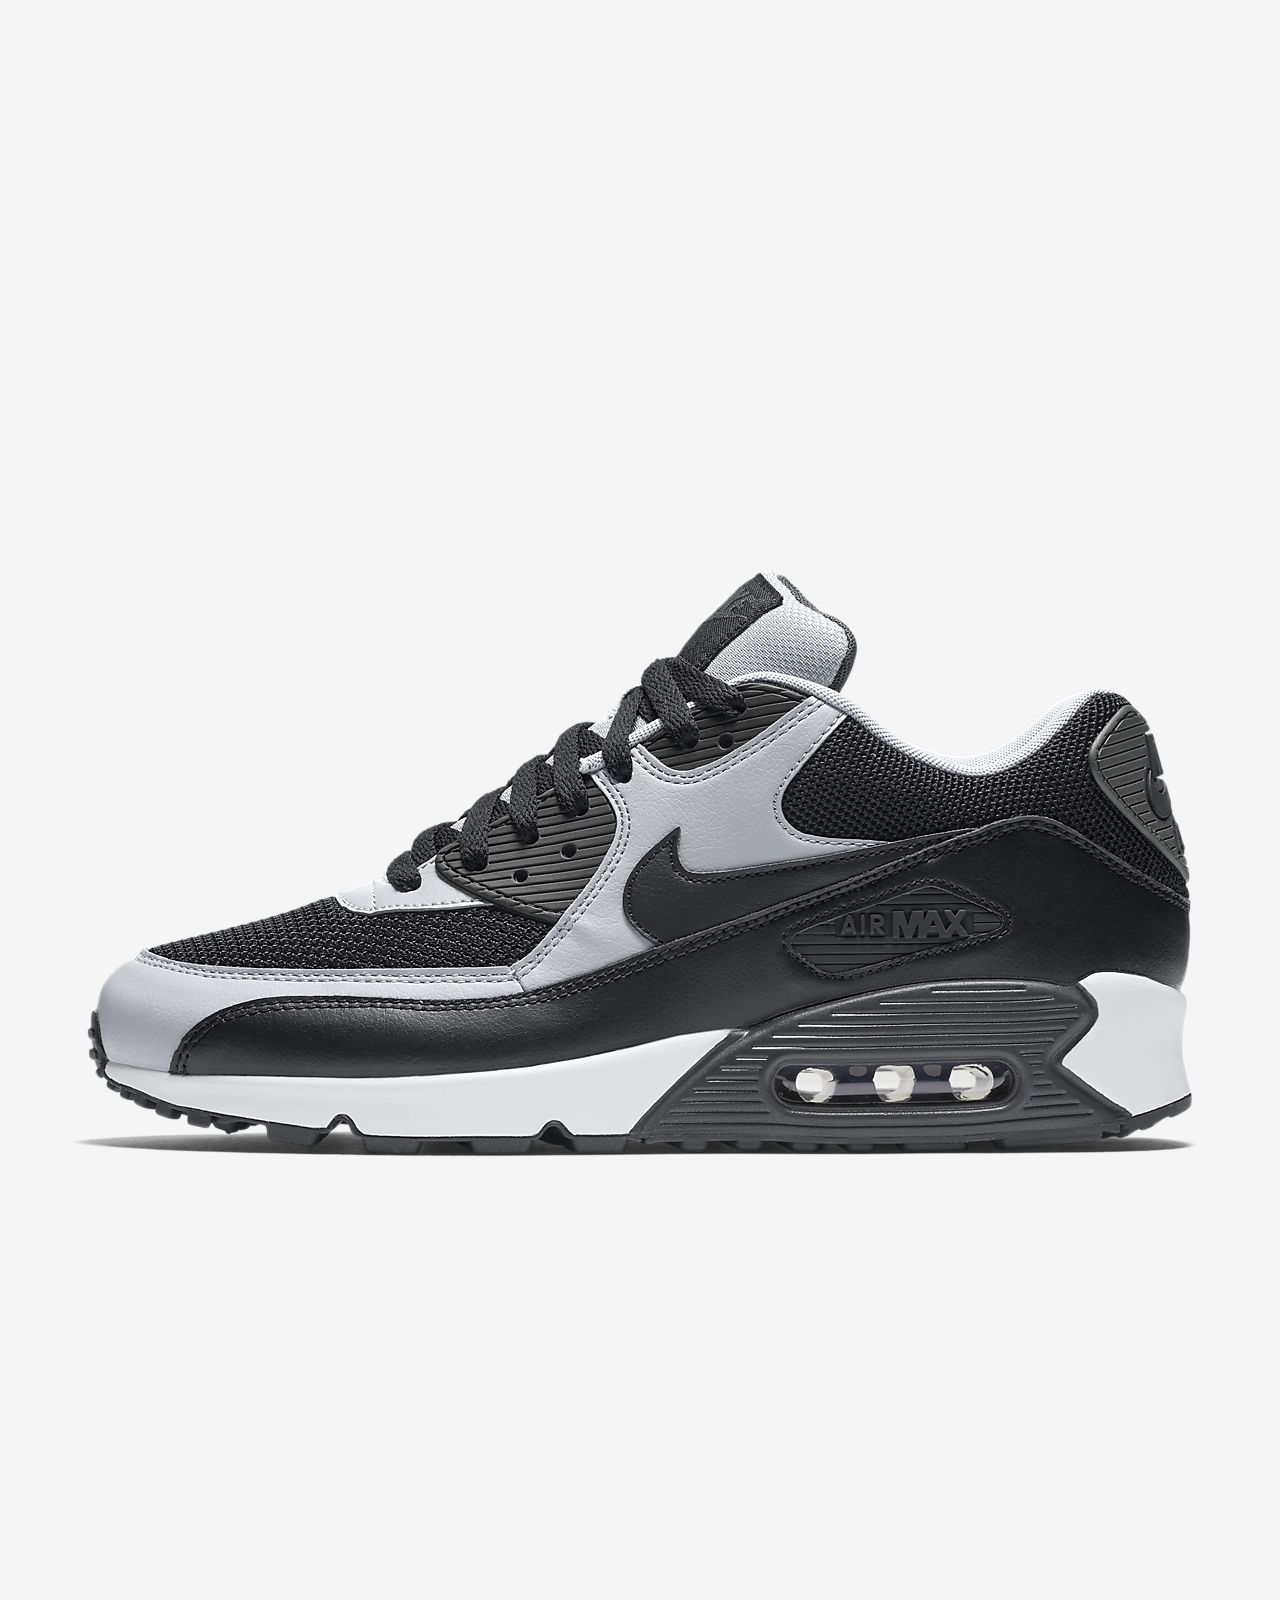 fbbecf2624 Nike Air Max 90 Essential Men's Shoe. Nike.com NL